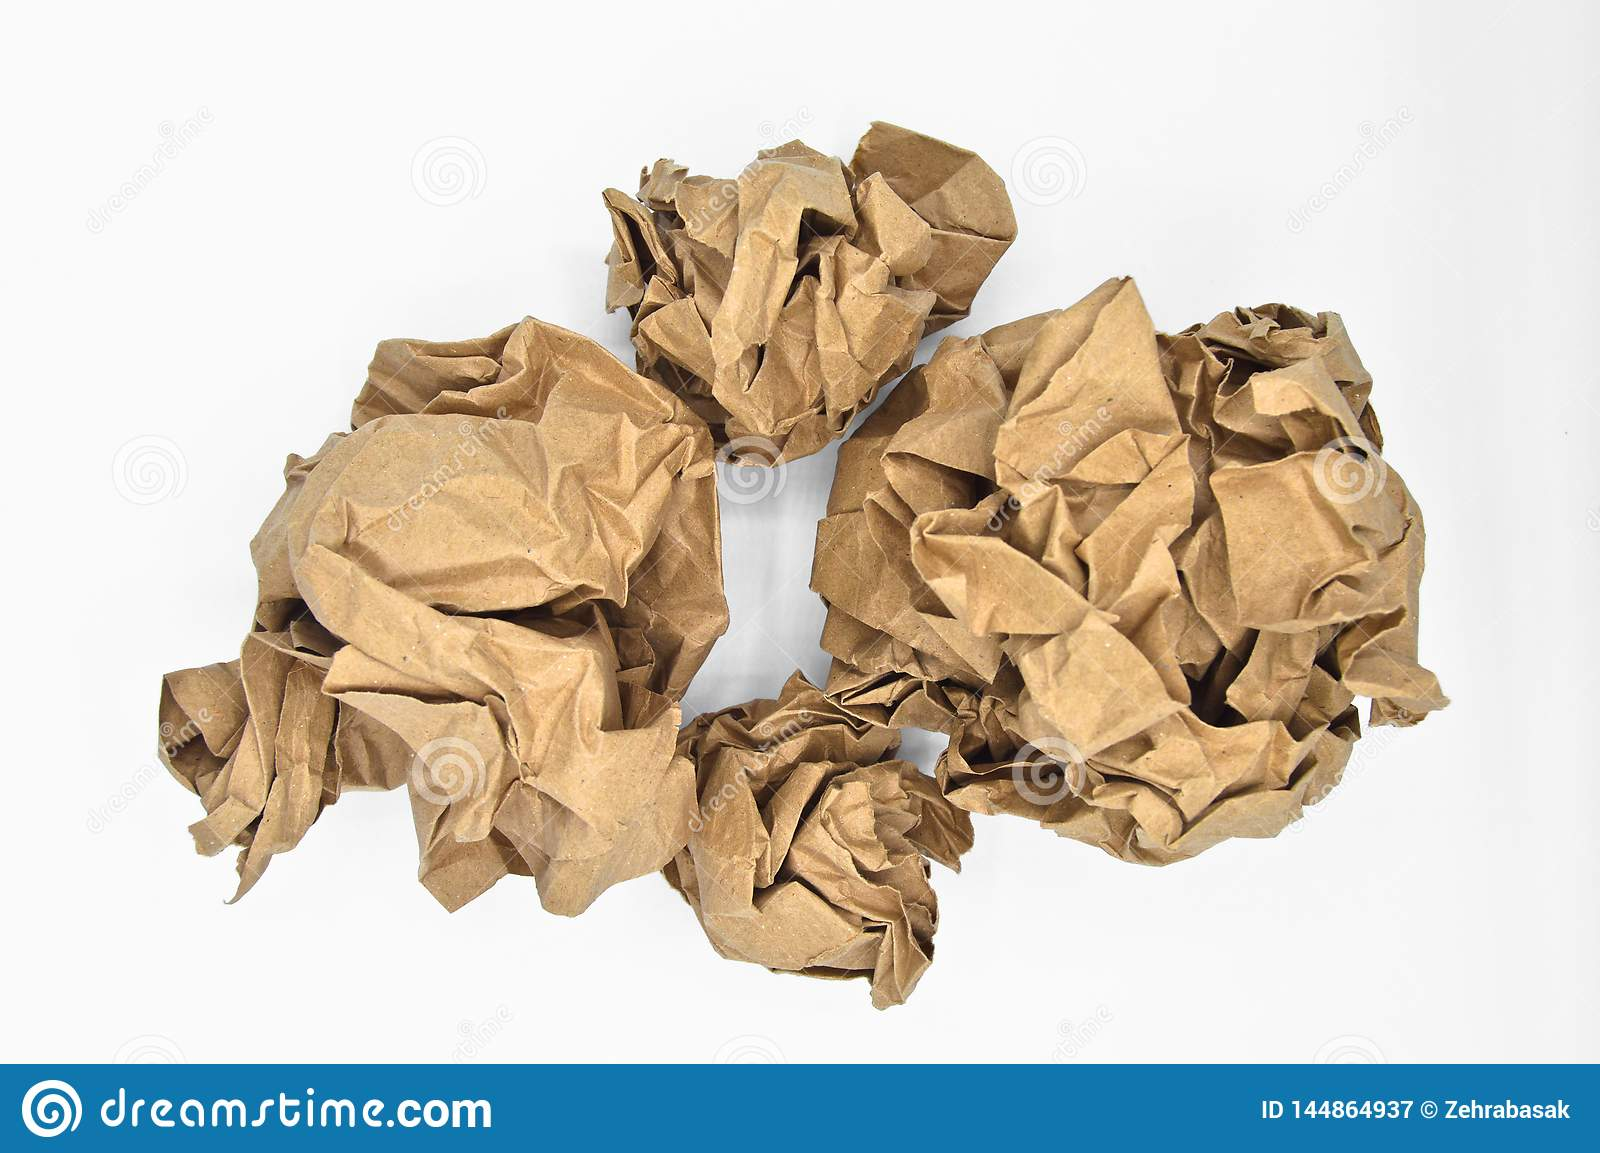 Brown and beige crumpled paper ball.